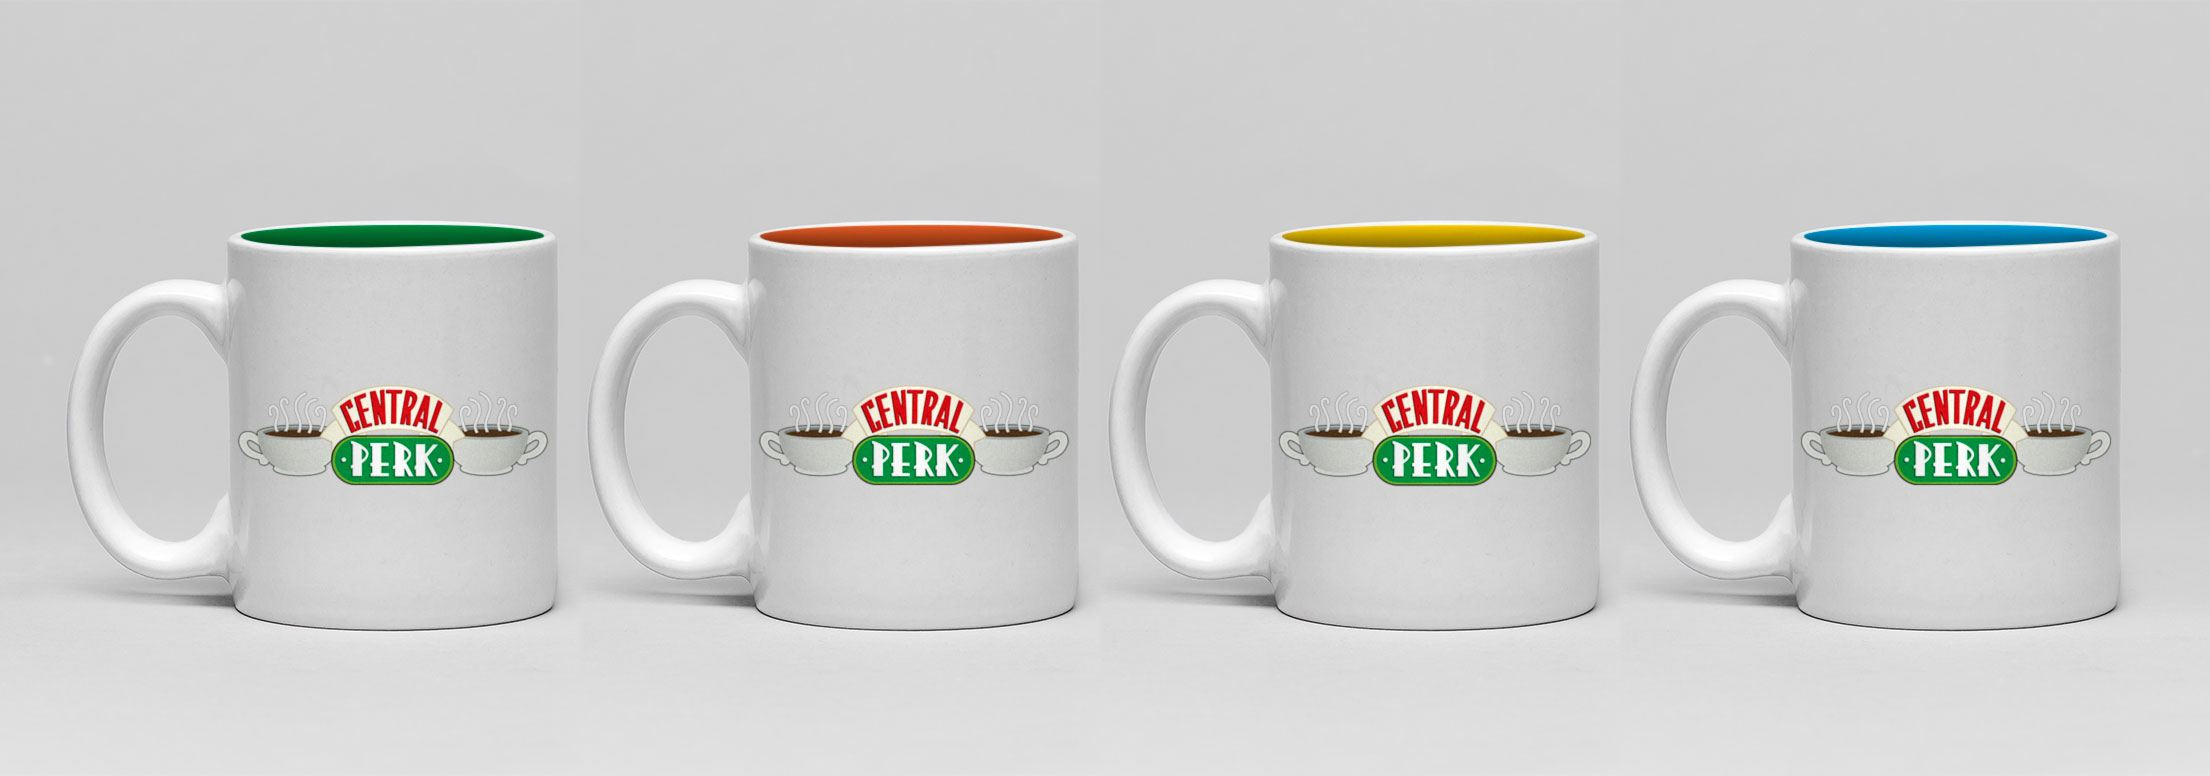 Friends Espresso Mugs 4-Pack Central Perk